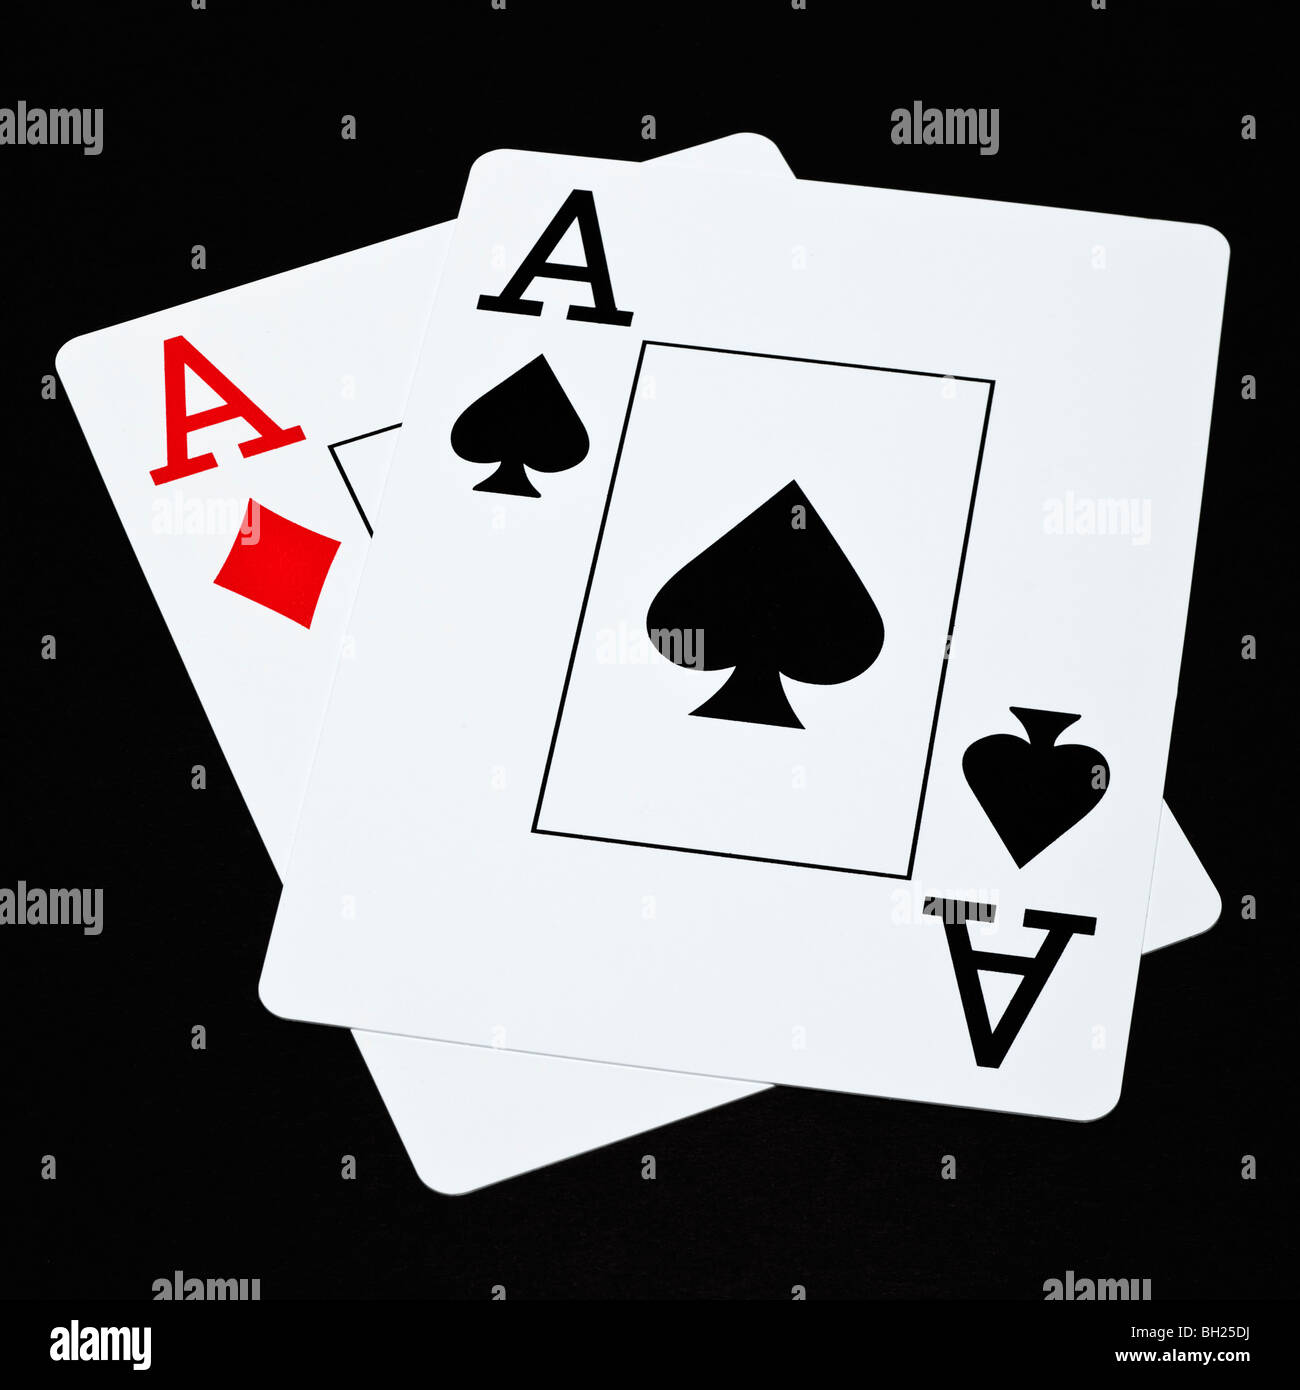 Poker cards showing a pair of aces hand - Stock Image